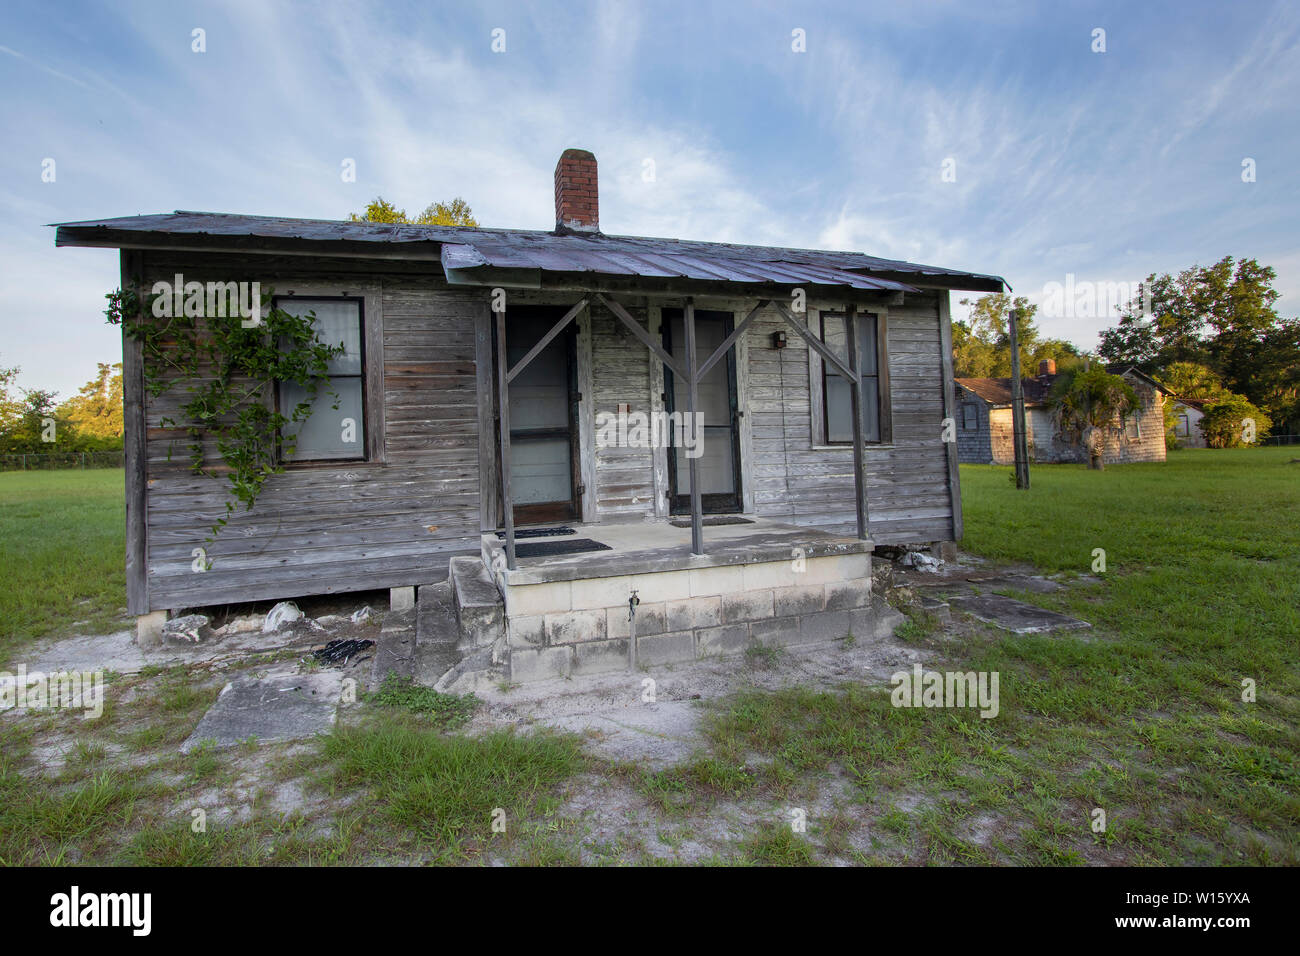 Deserted old cabin in the deep South of the United States Stock Photo